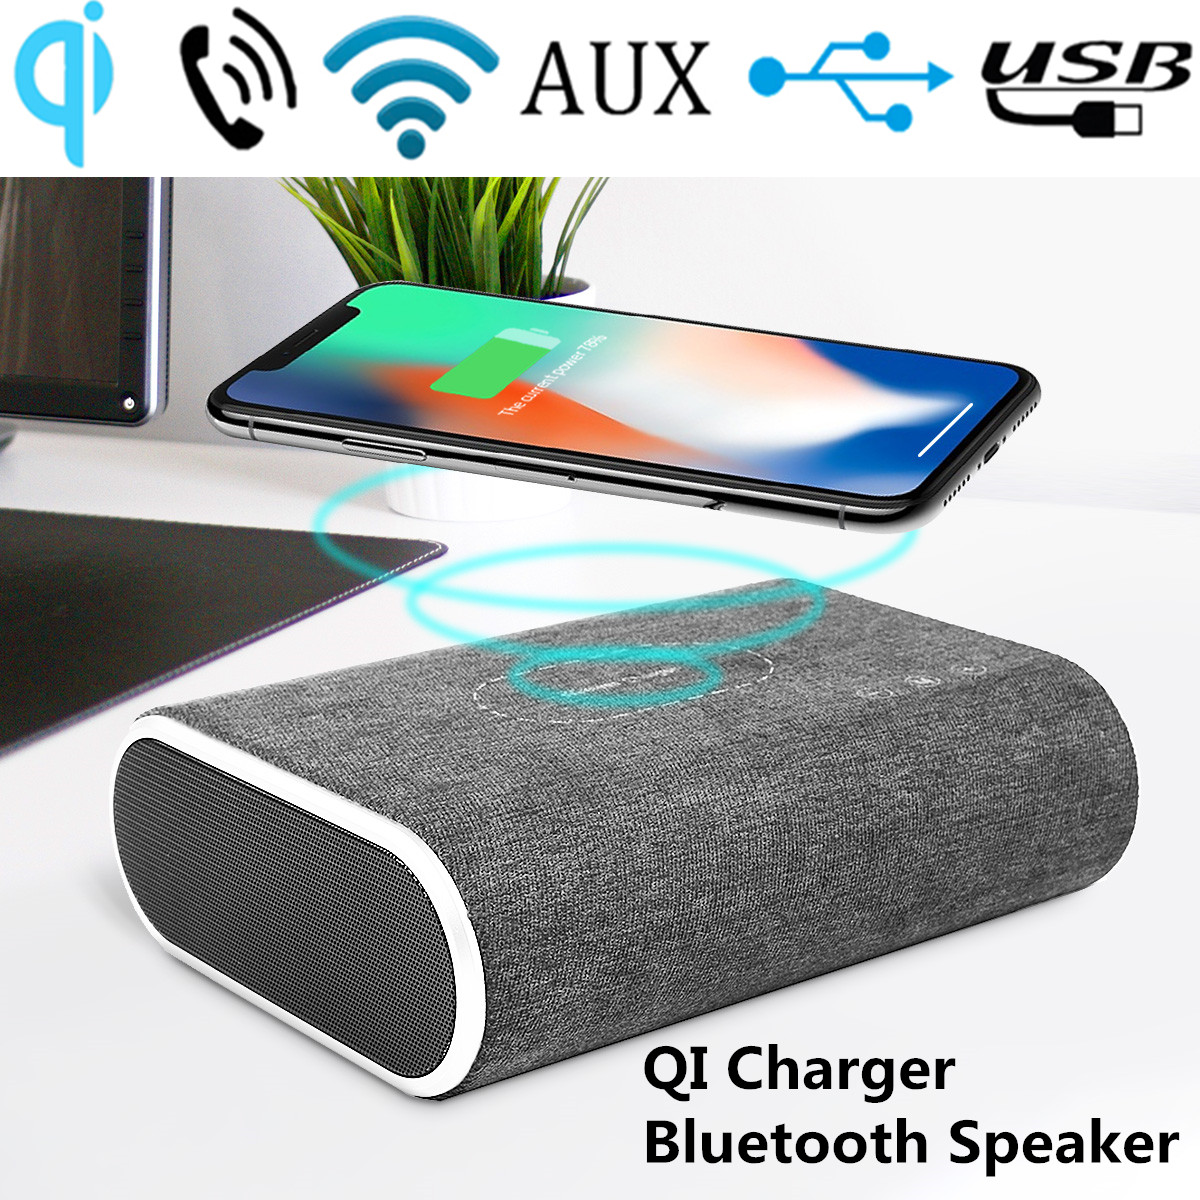 20W QI Wireless Charger bluetooth Wireless Speakers Bass Speaker Desktop Phone Charging Holder Dock Support AUX For QI Standard Mobile Phone